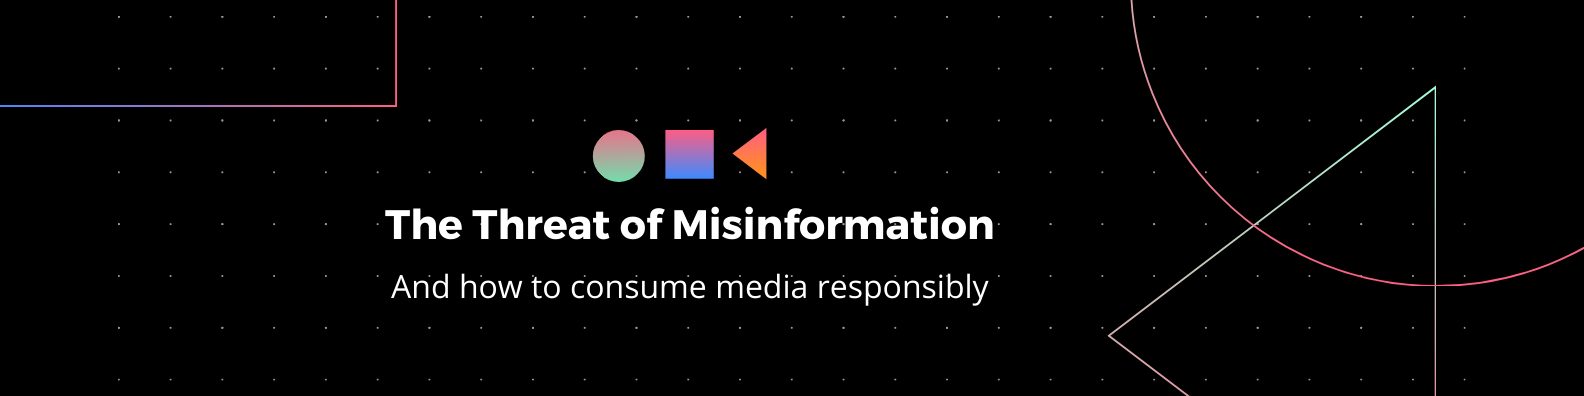 The Threat of Misinformation